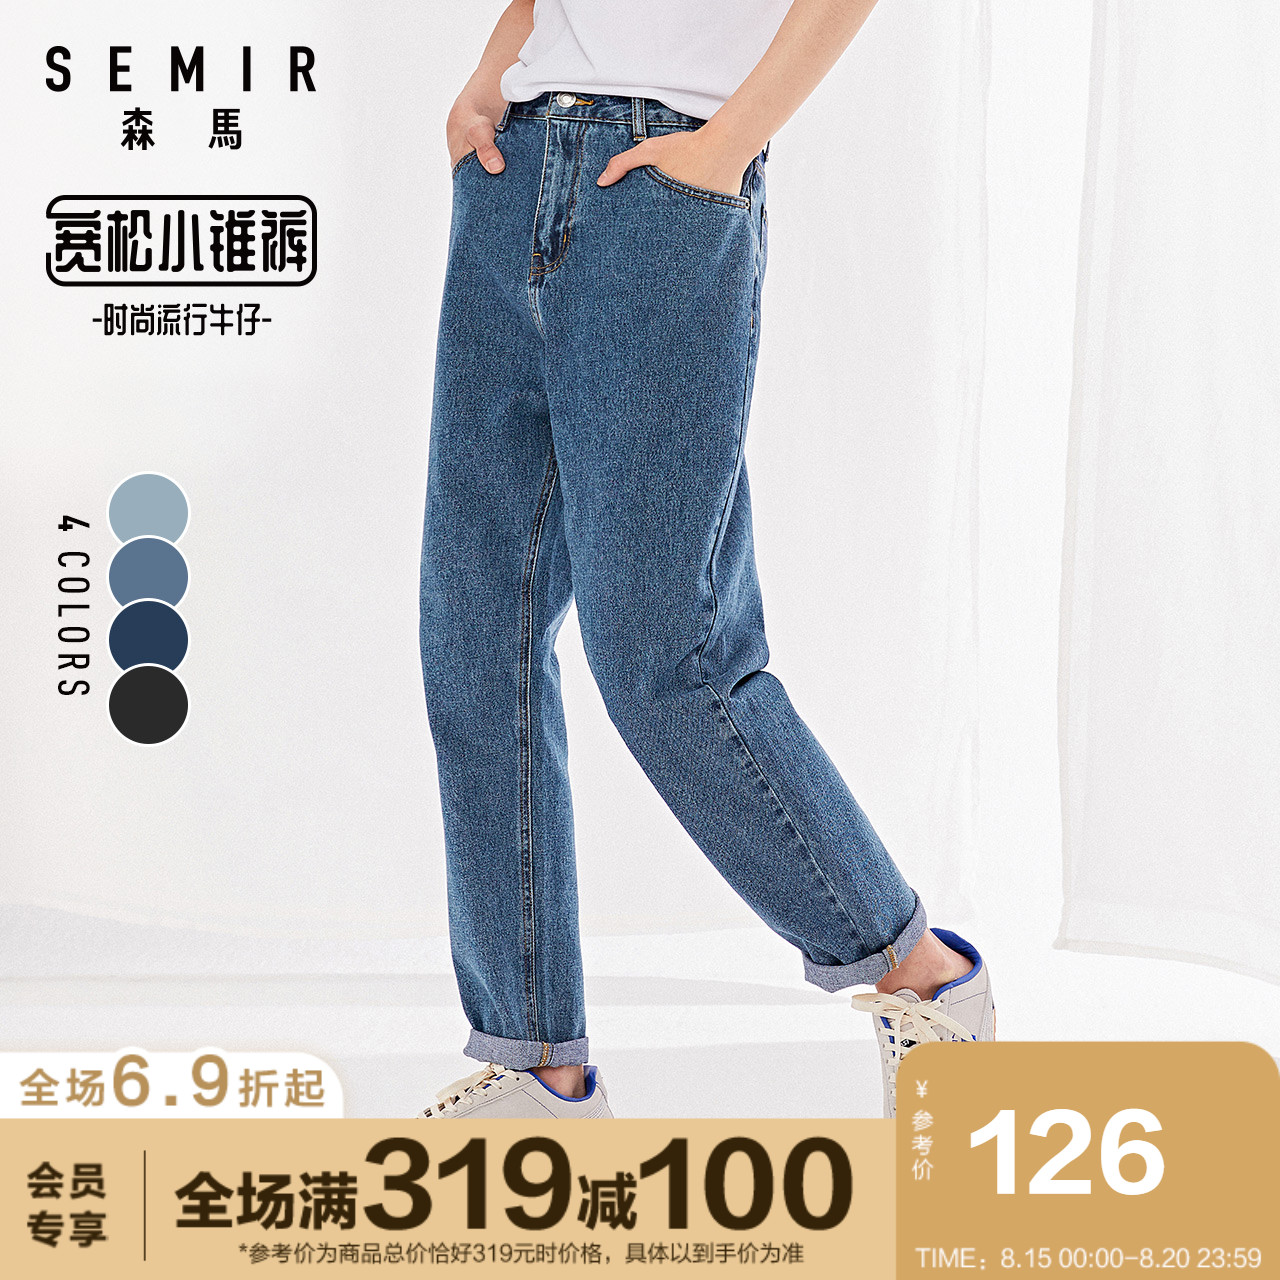 Sun Ma jeans men's summer straight tube loose jeans pants men's fashion pants students' all-around use of daddy's pants